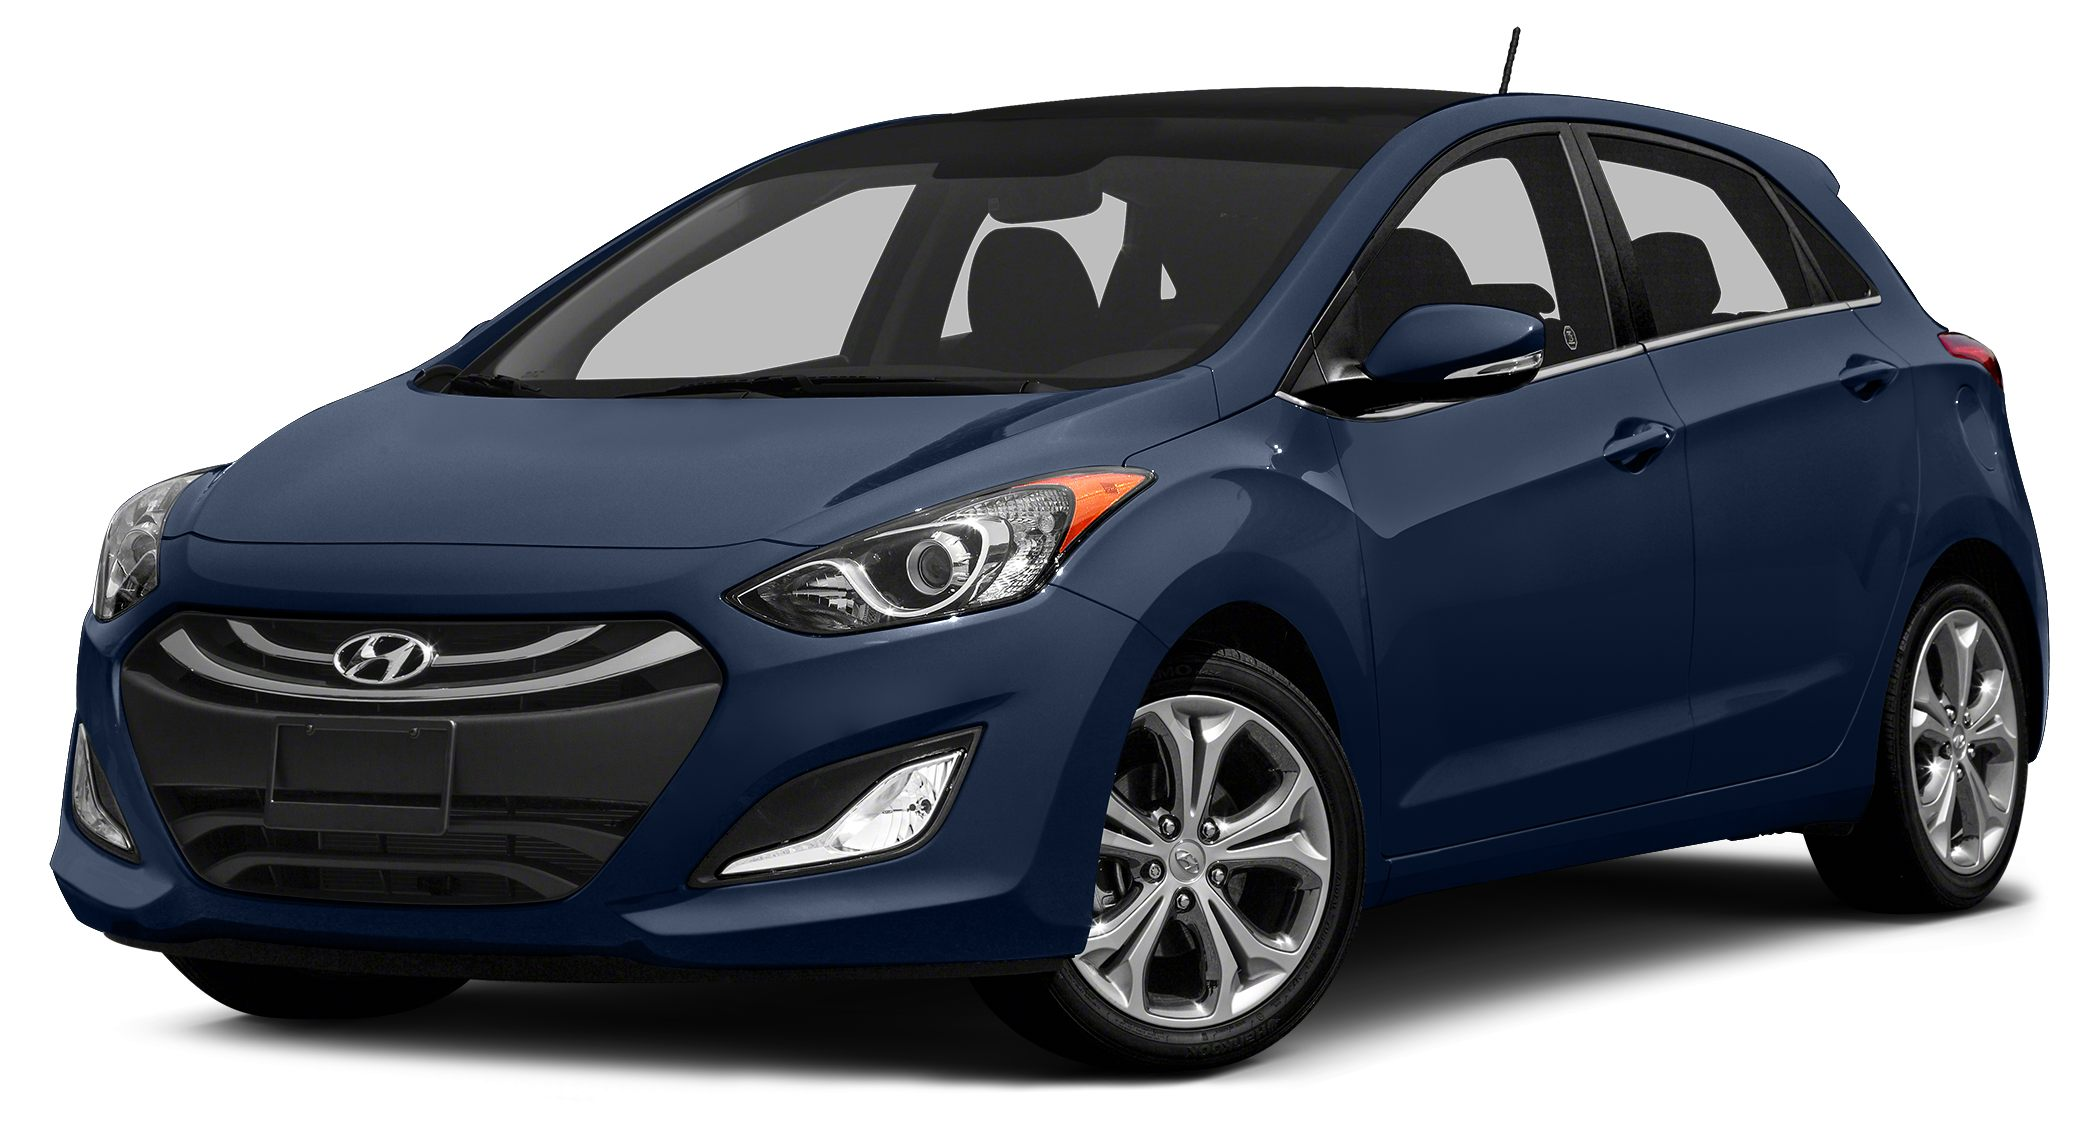 2013 Hyundai Elantra GT Base ONE OWNER and Clean Carfax Stick shift 6spd This 2013 Elantra